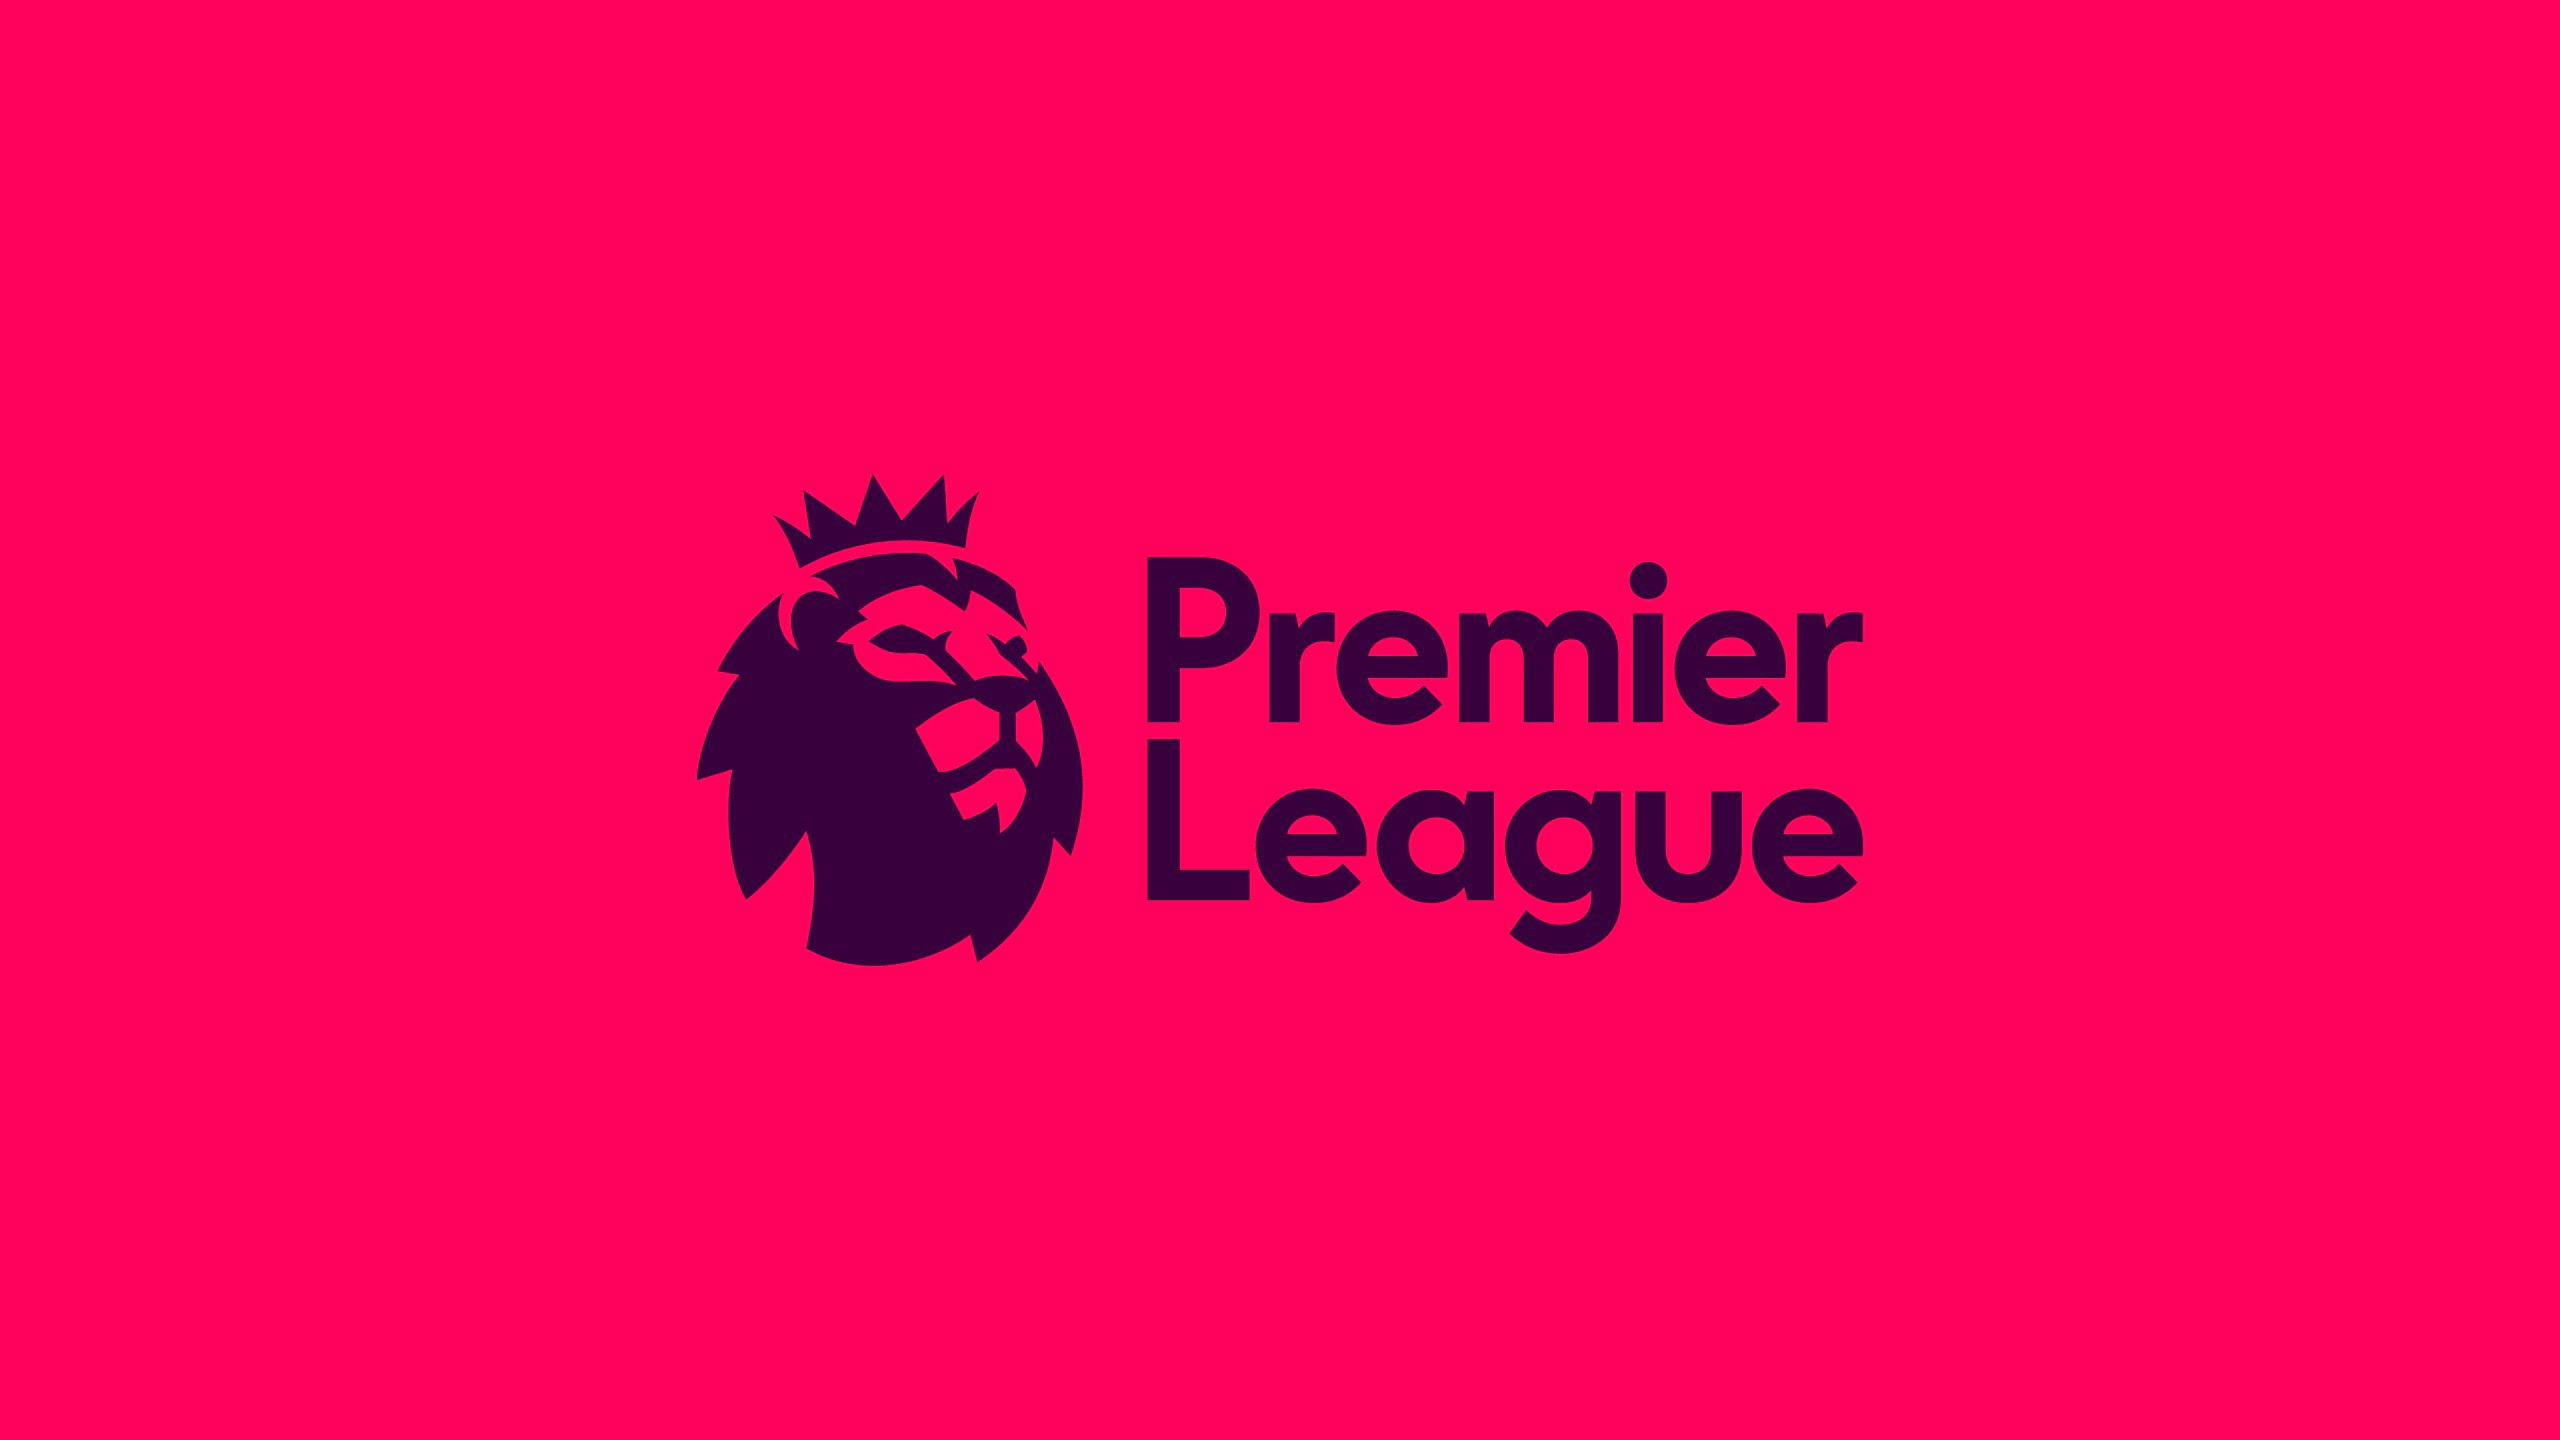 28/01/2021 Daily Predictions: English Premier League – Tottenham Hotspur Vs. Liverpool